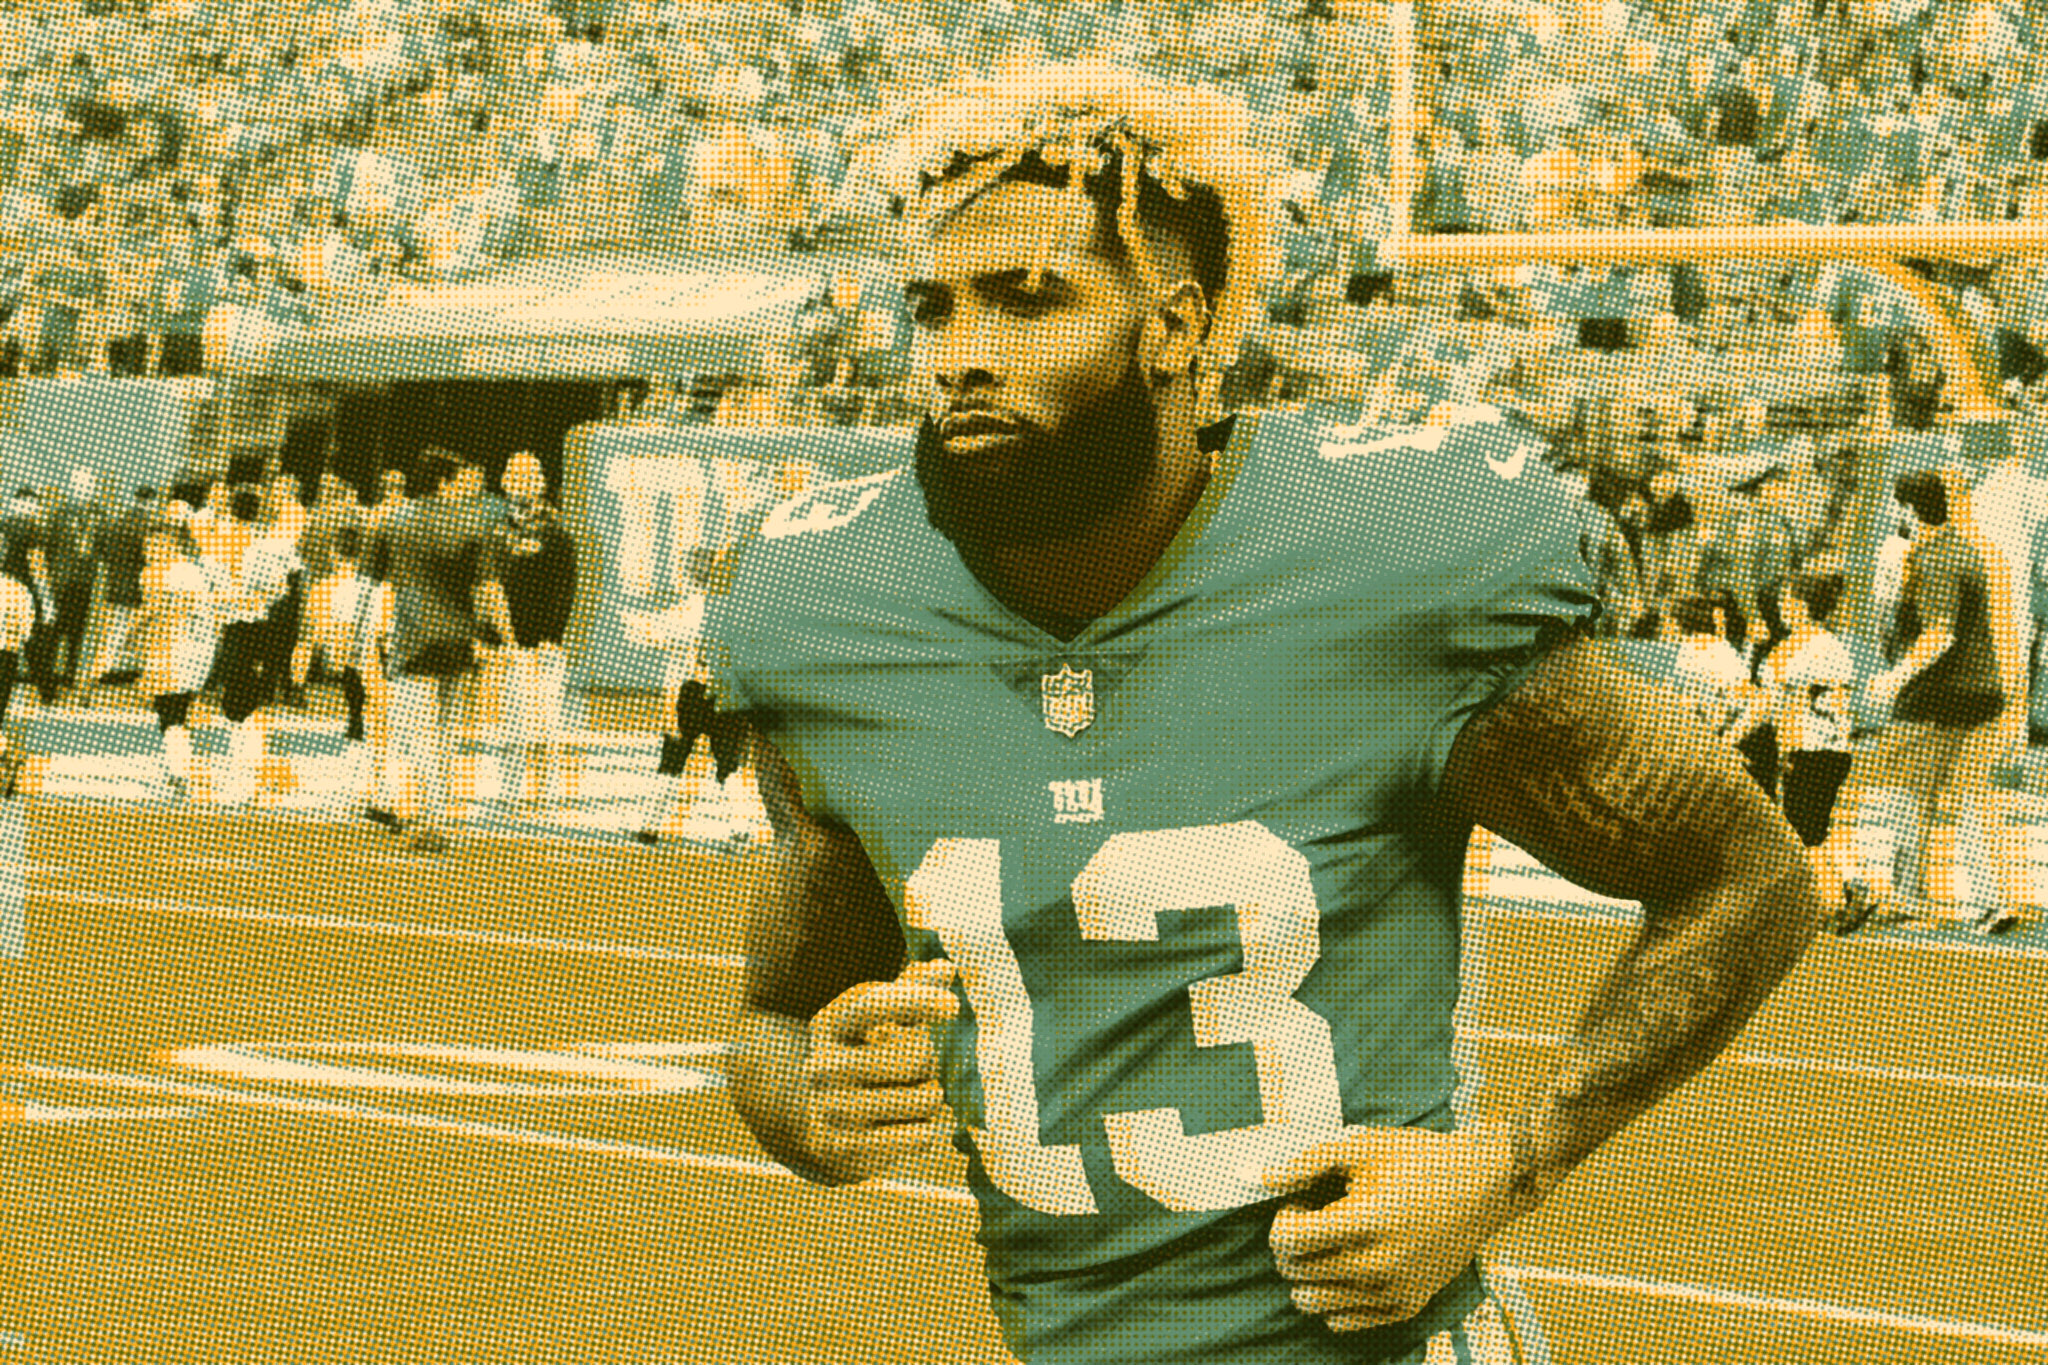 The exile of Odell Beckham Jr. and how the New York Giants lost their way